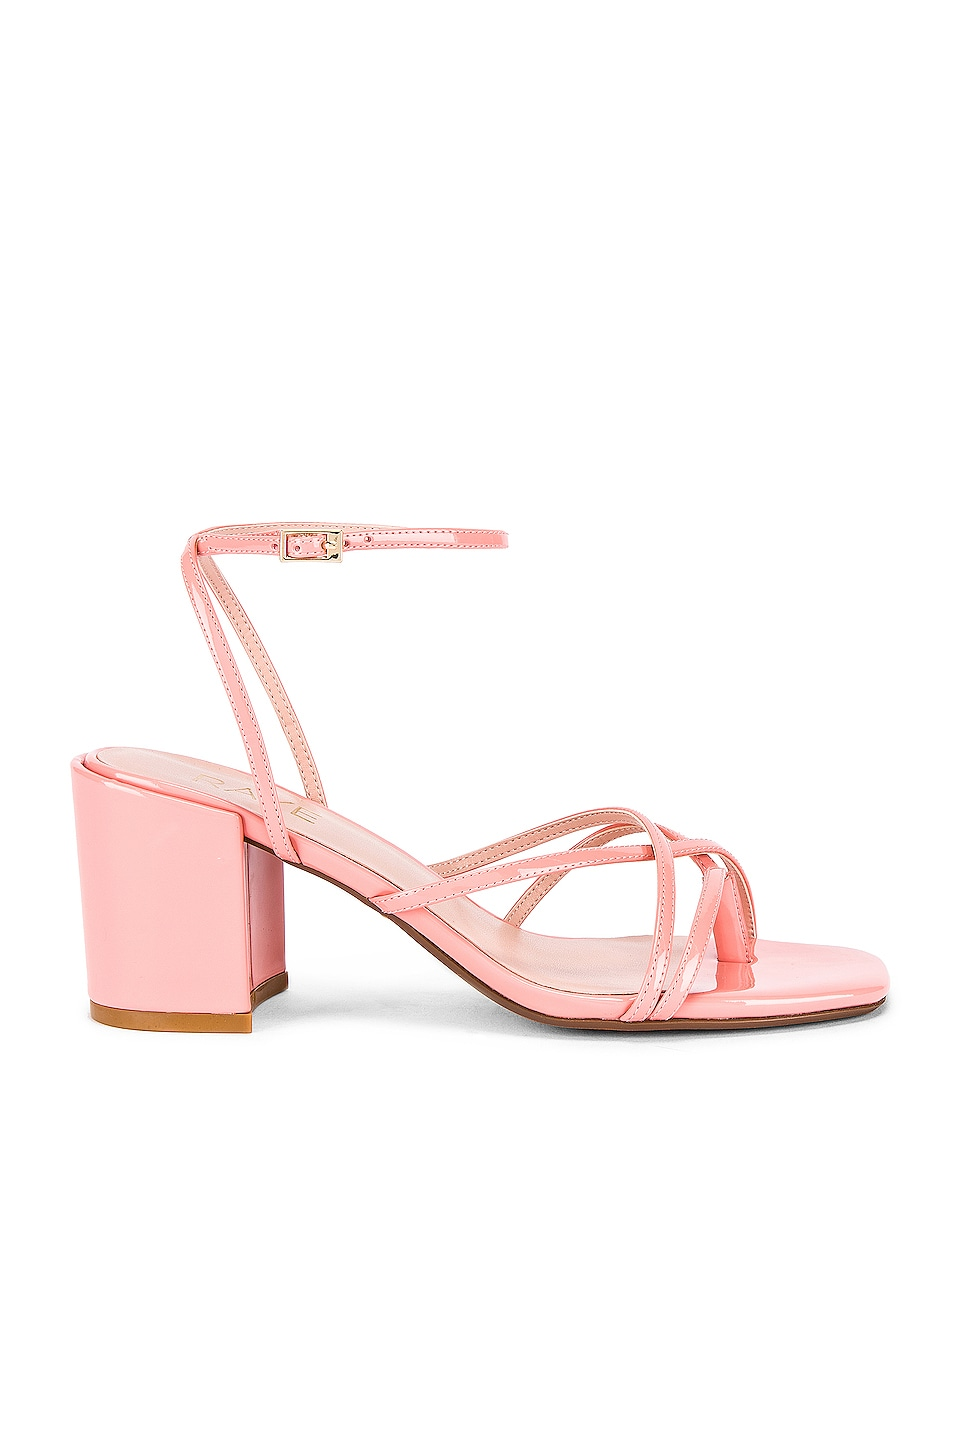 RAYE Hours Sandal in Pink